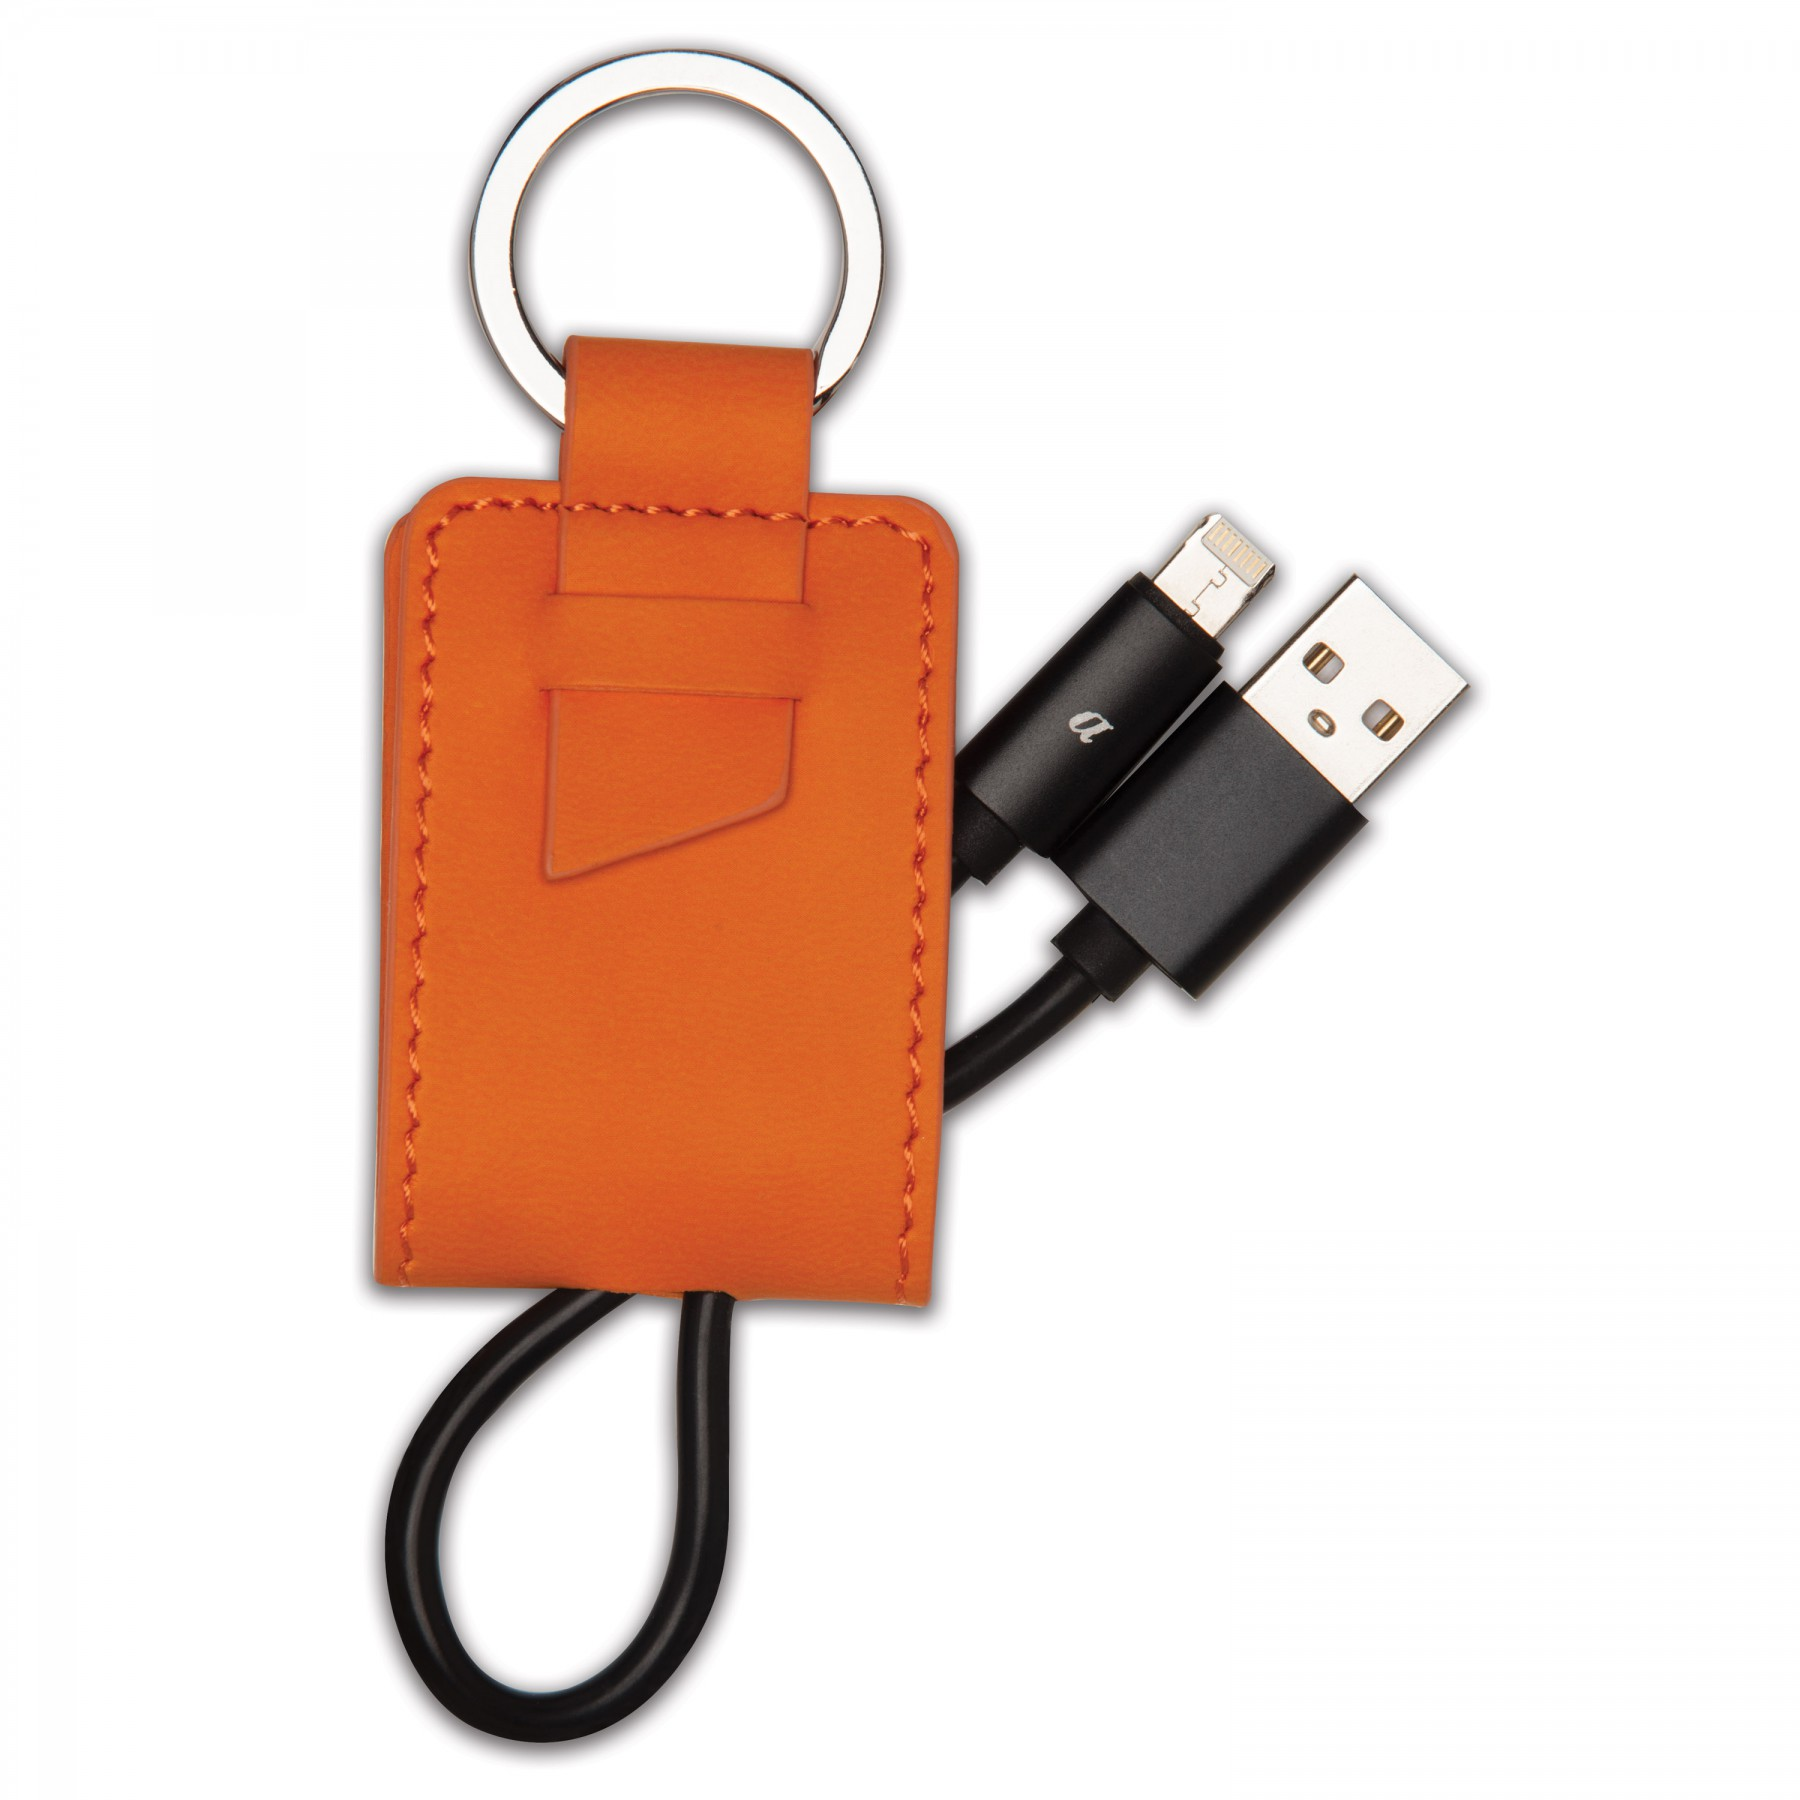 Donald Key Ring/Charging Kit, T991, Debossed Logo